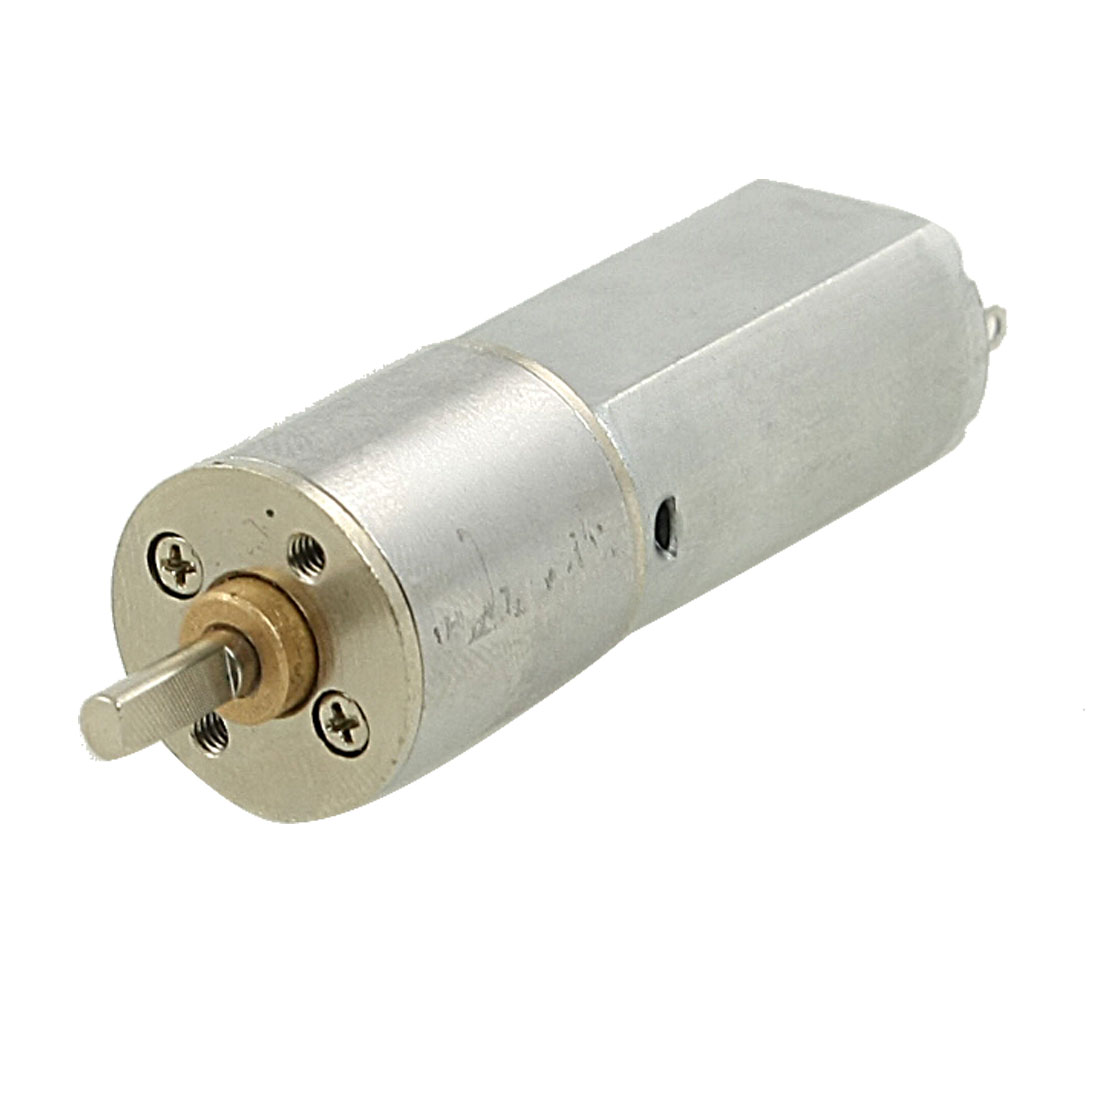 DC-12V-0-4A-30RPM-2-Pin-Connector-Electric-Geared-Motor-Replacement